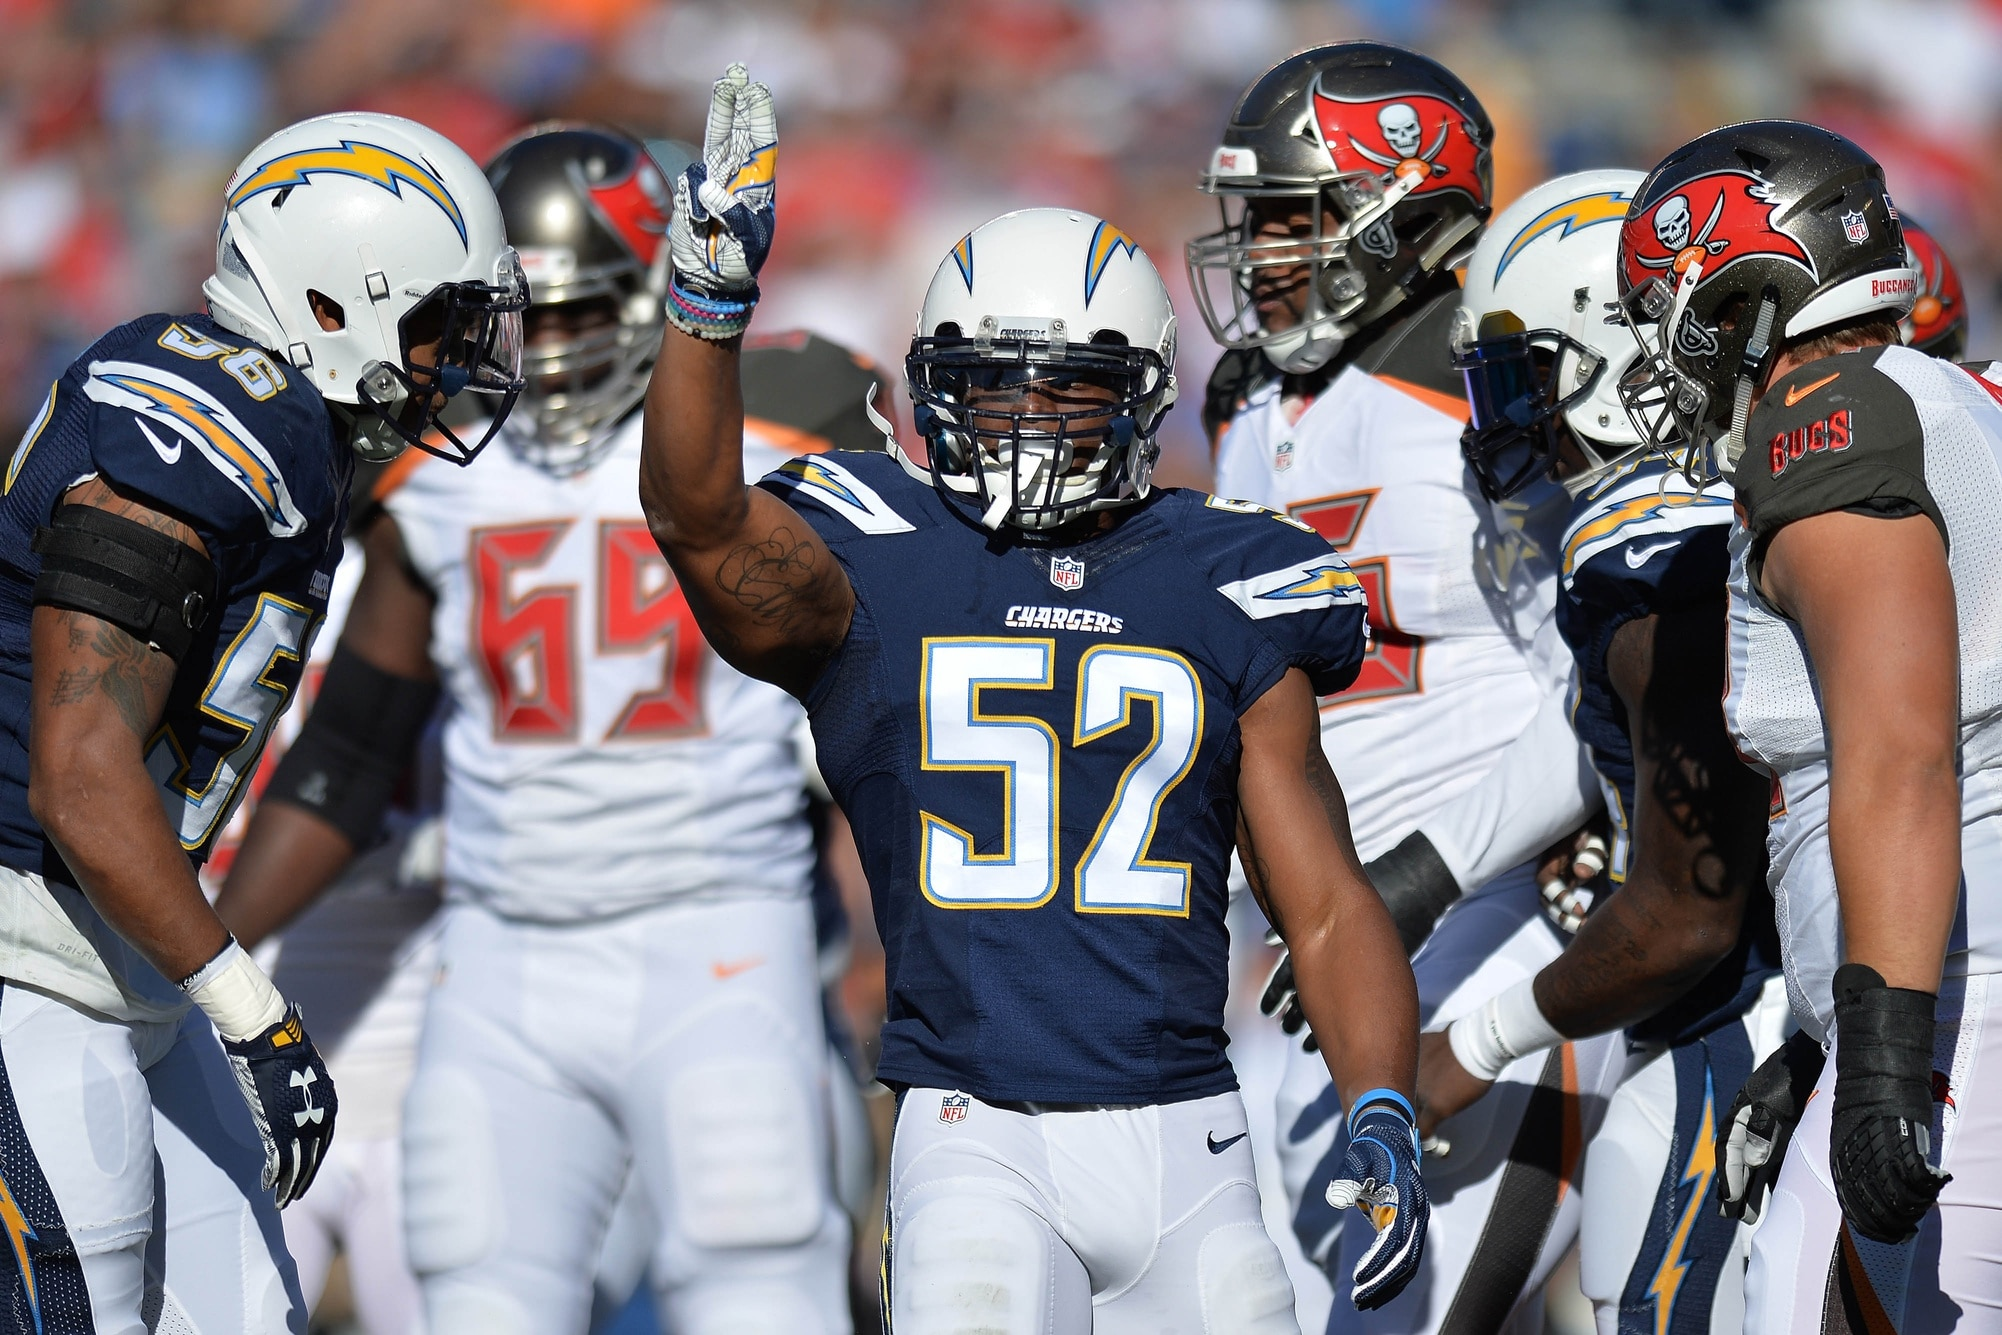 Chargers LB Denzel Perryman carted off field with leg injury.